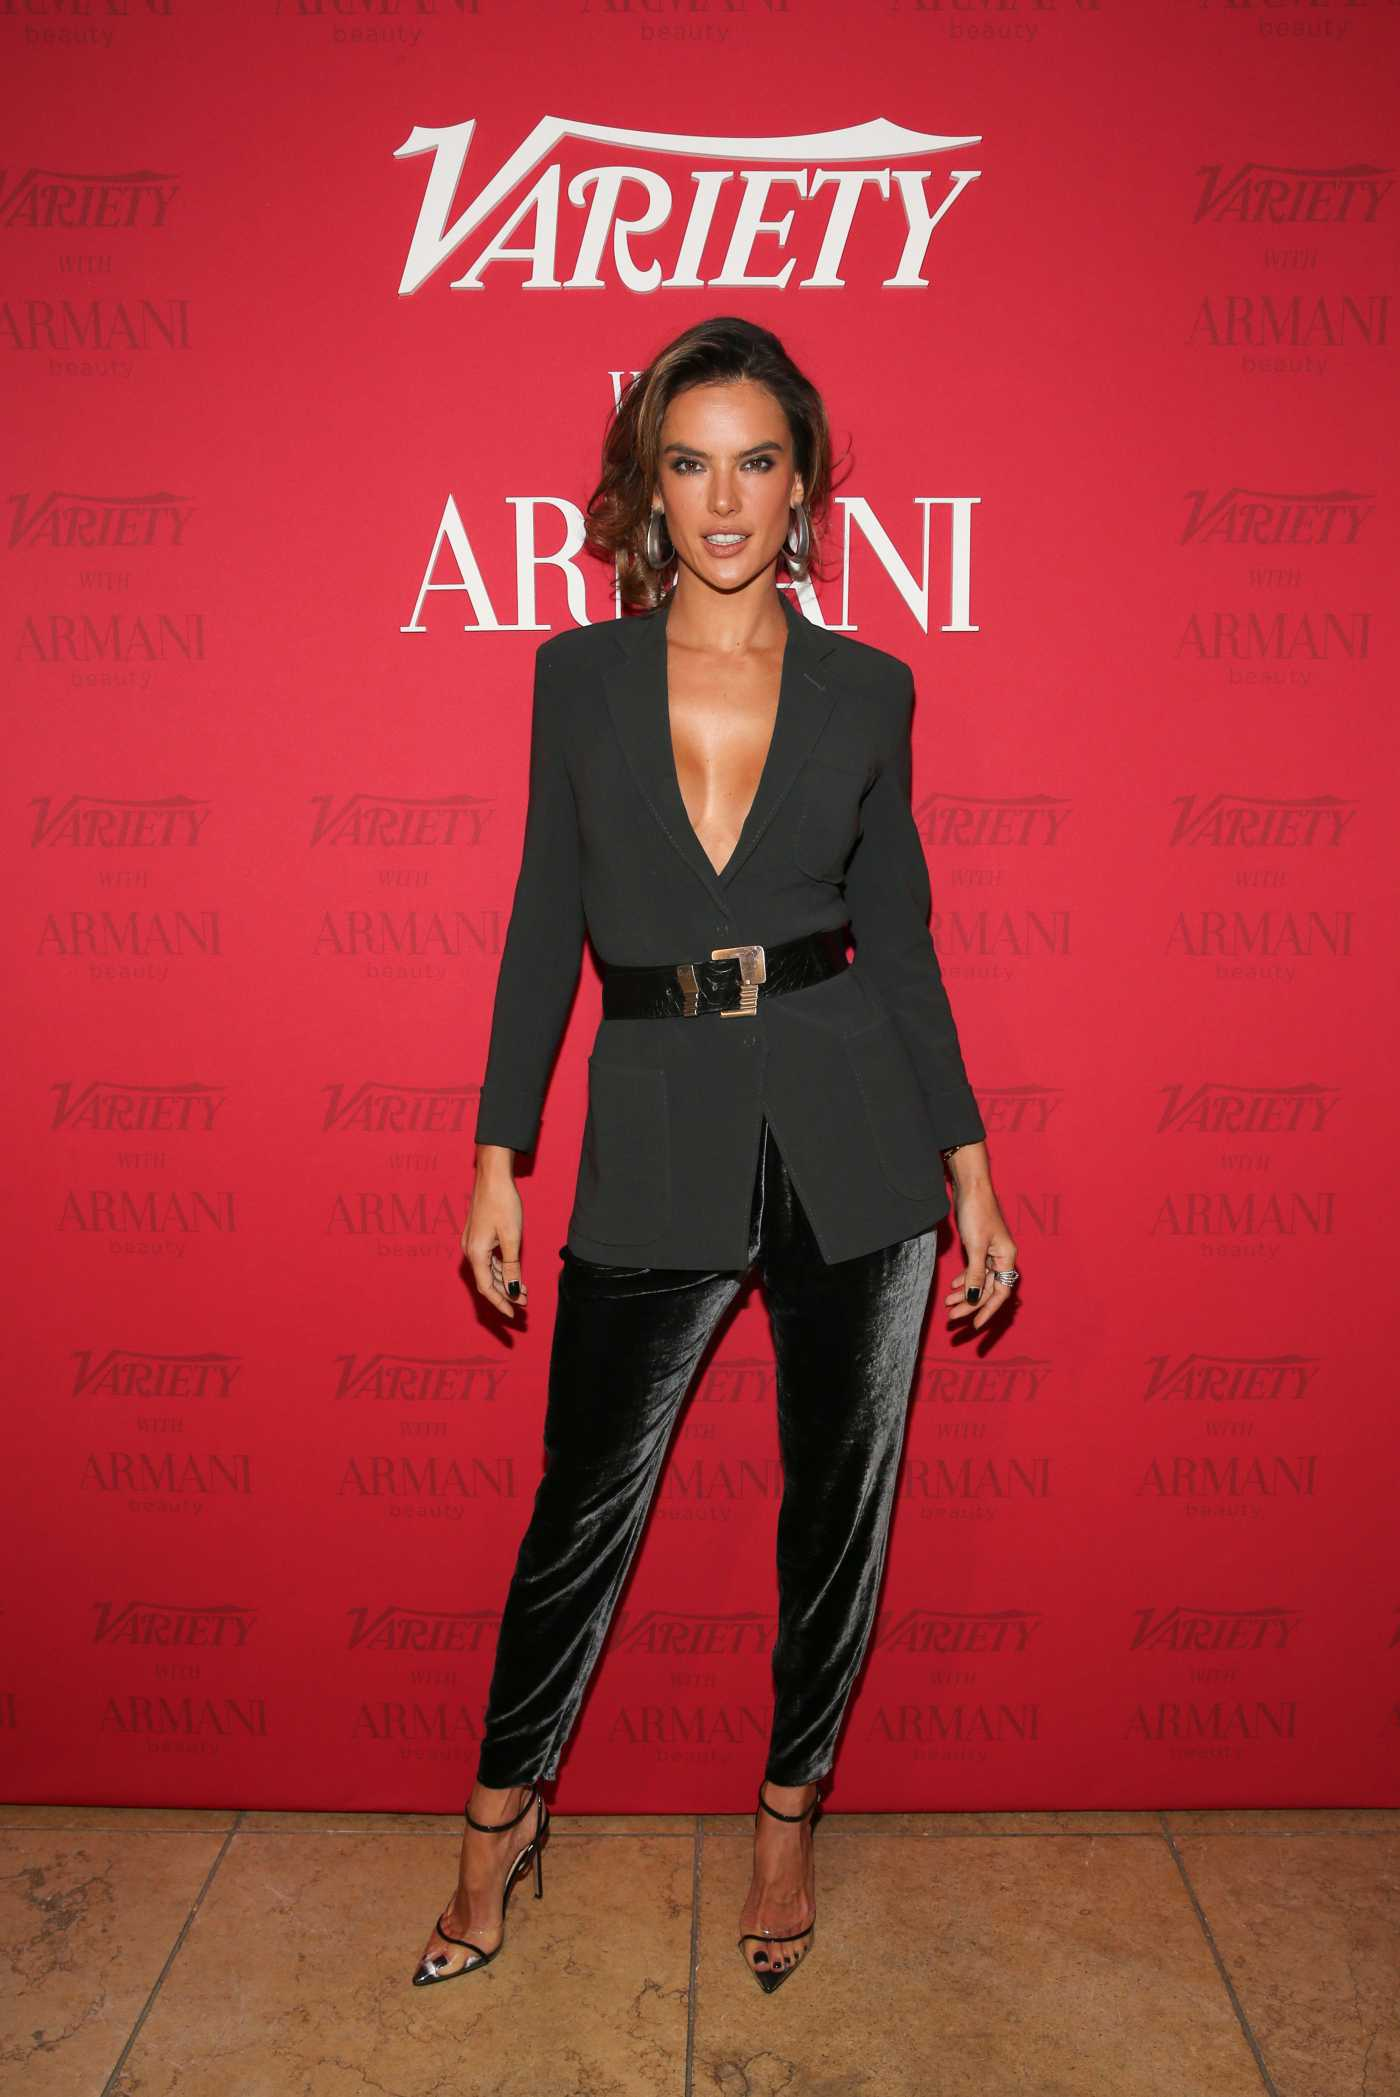 Alessandra Ambrosio Attends the Variety x Armani Makeup Artistry Dinner at Sunset Tower in Los Angeles 02/04/2020